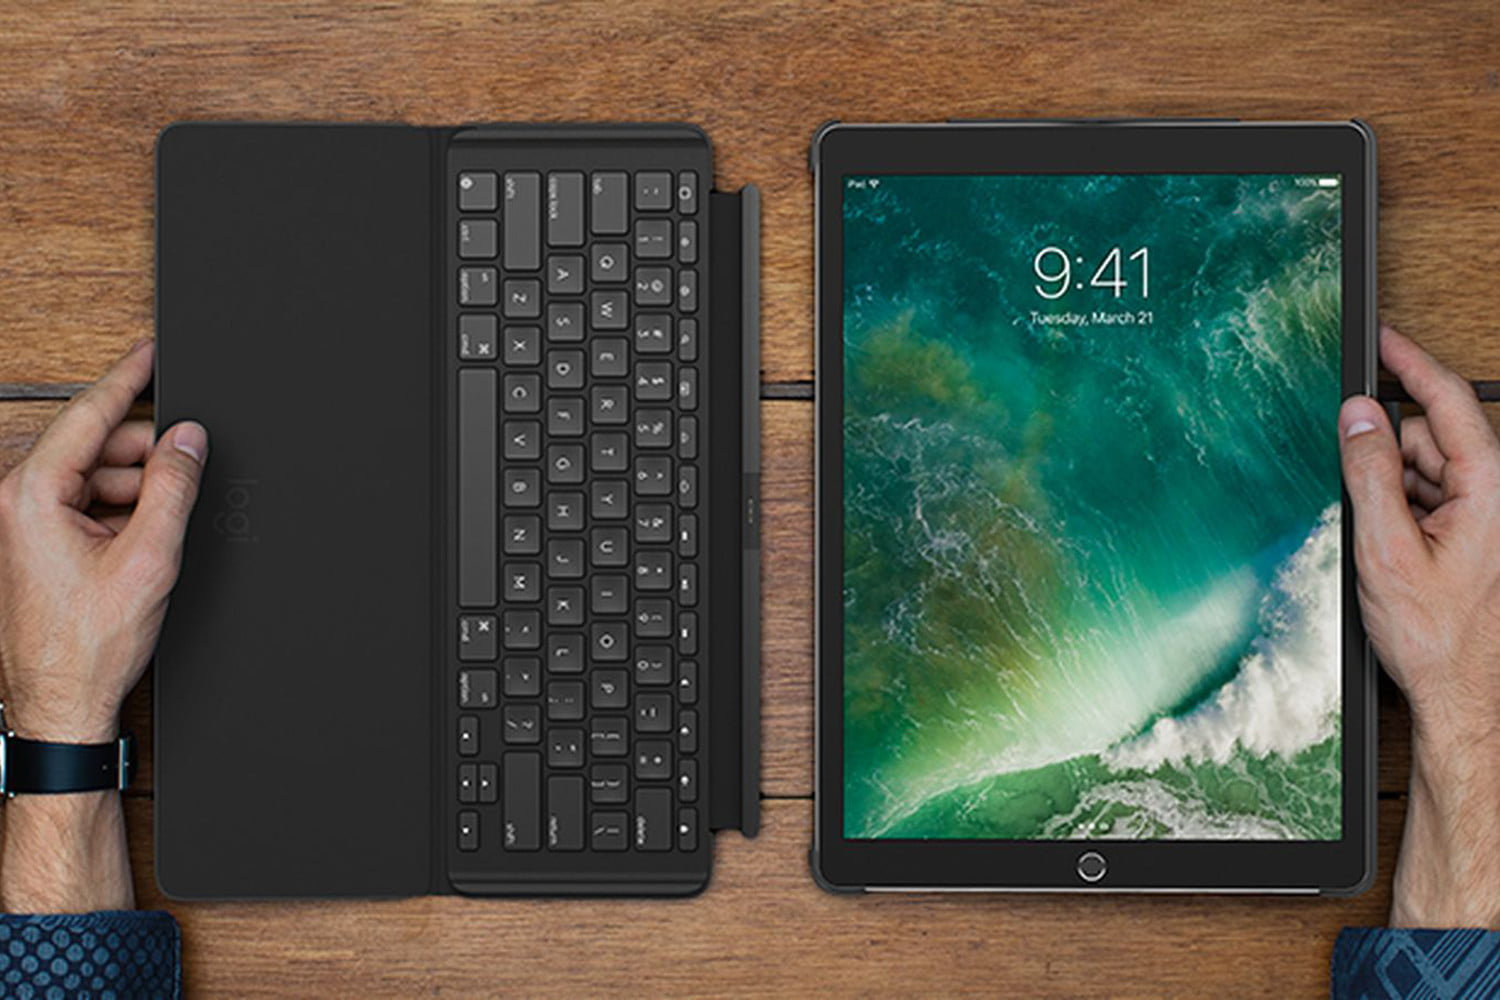 Keep your tablet stylish and secure with one of the best iPad Pro 10.5 cases The Best Cases Covers for Style Protection